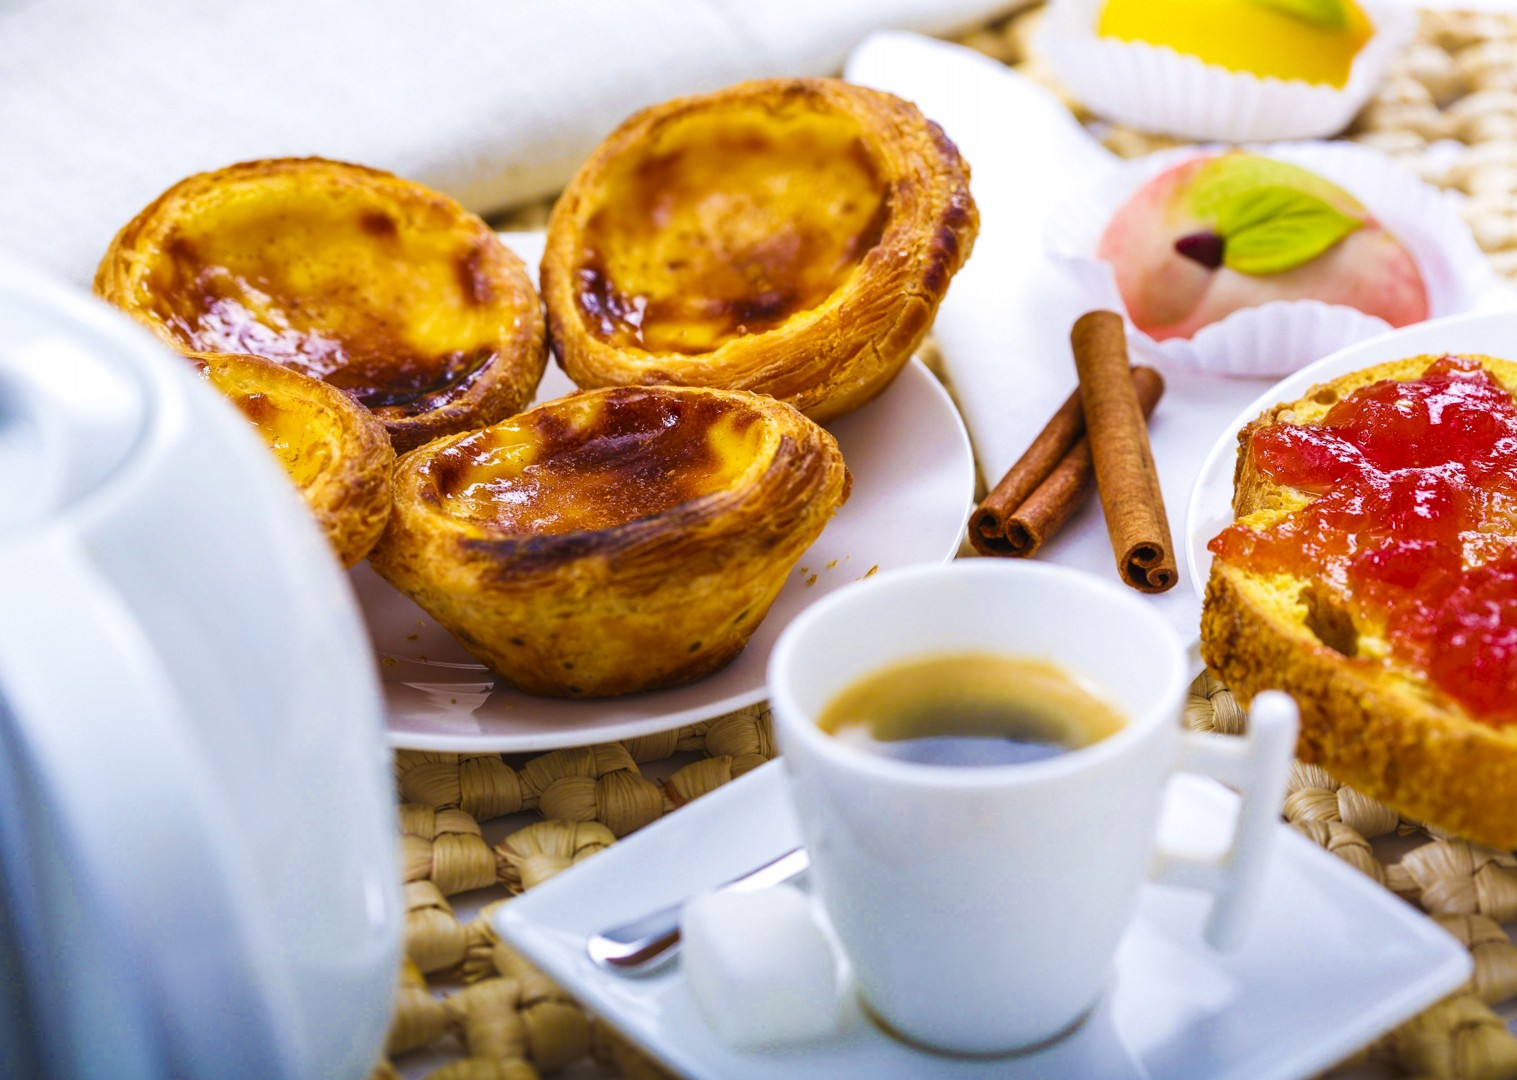 local-delicacies-portugal-pastel-de-nata-food-cycling-tour.jpg - Portugal - Port and Wine - Self Guided Leisure Cycling Holiday - Leisure Cycling